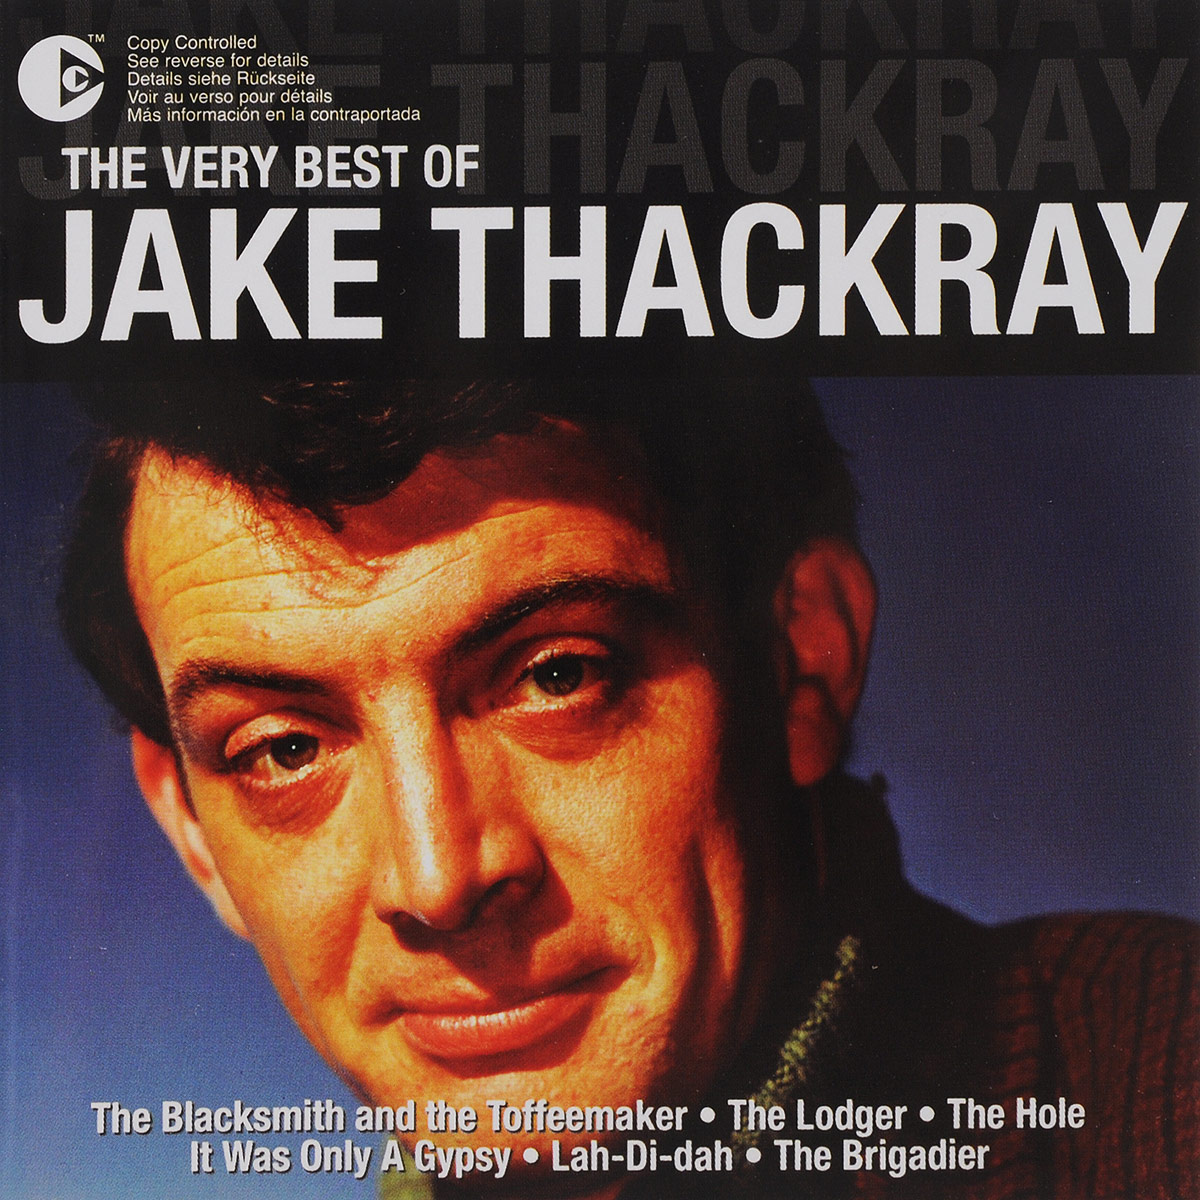 THACKRAY, JAKE. THE VERY BEST OF